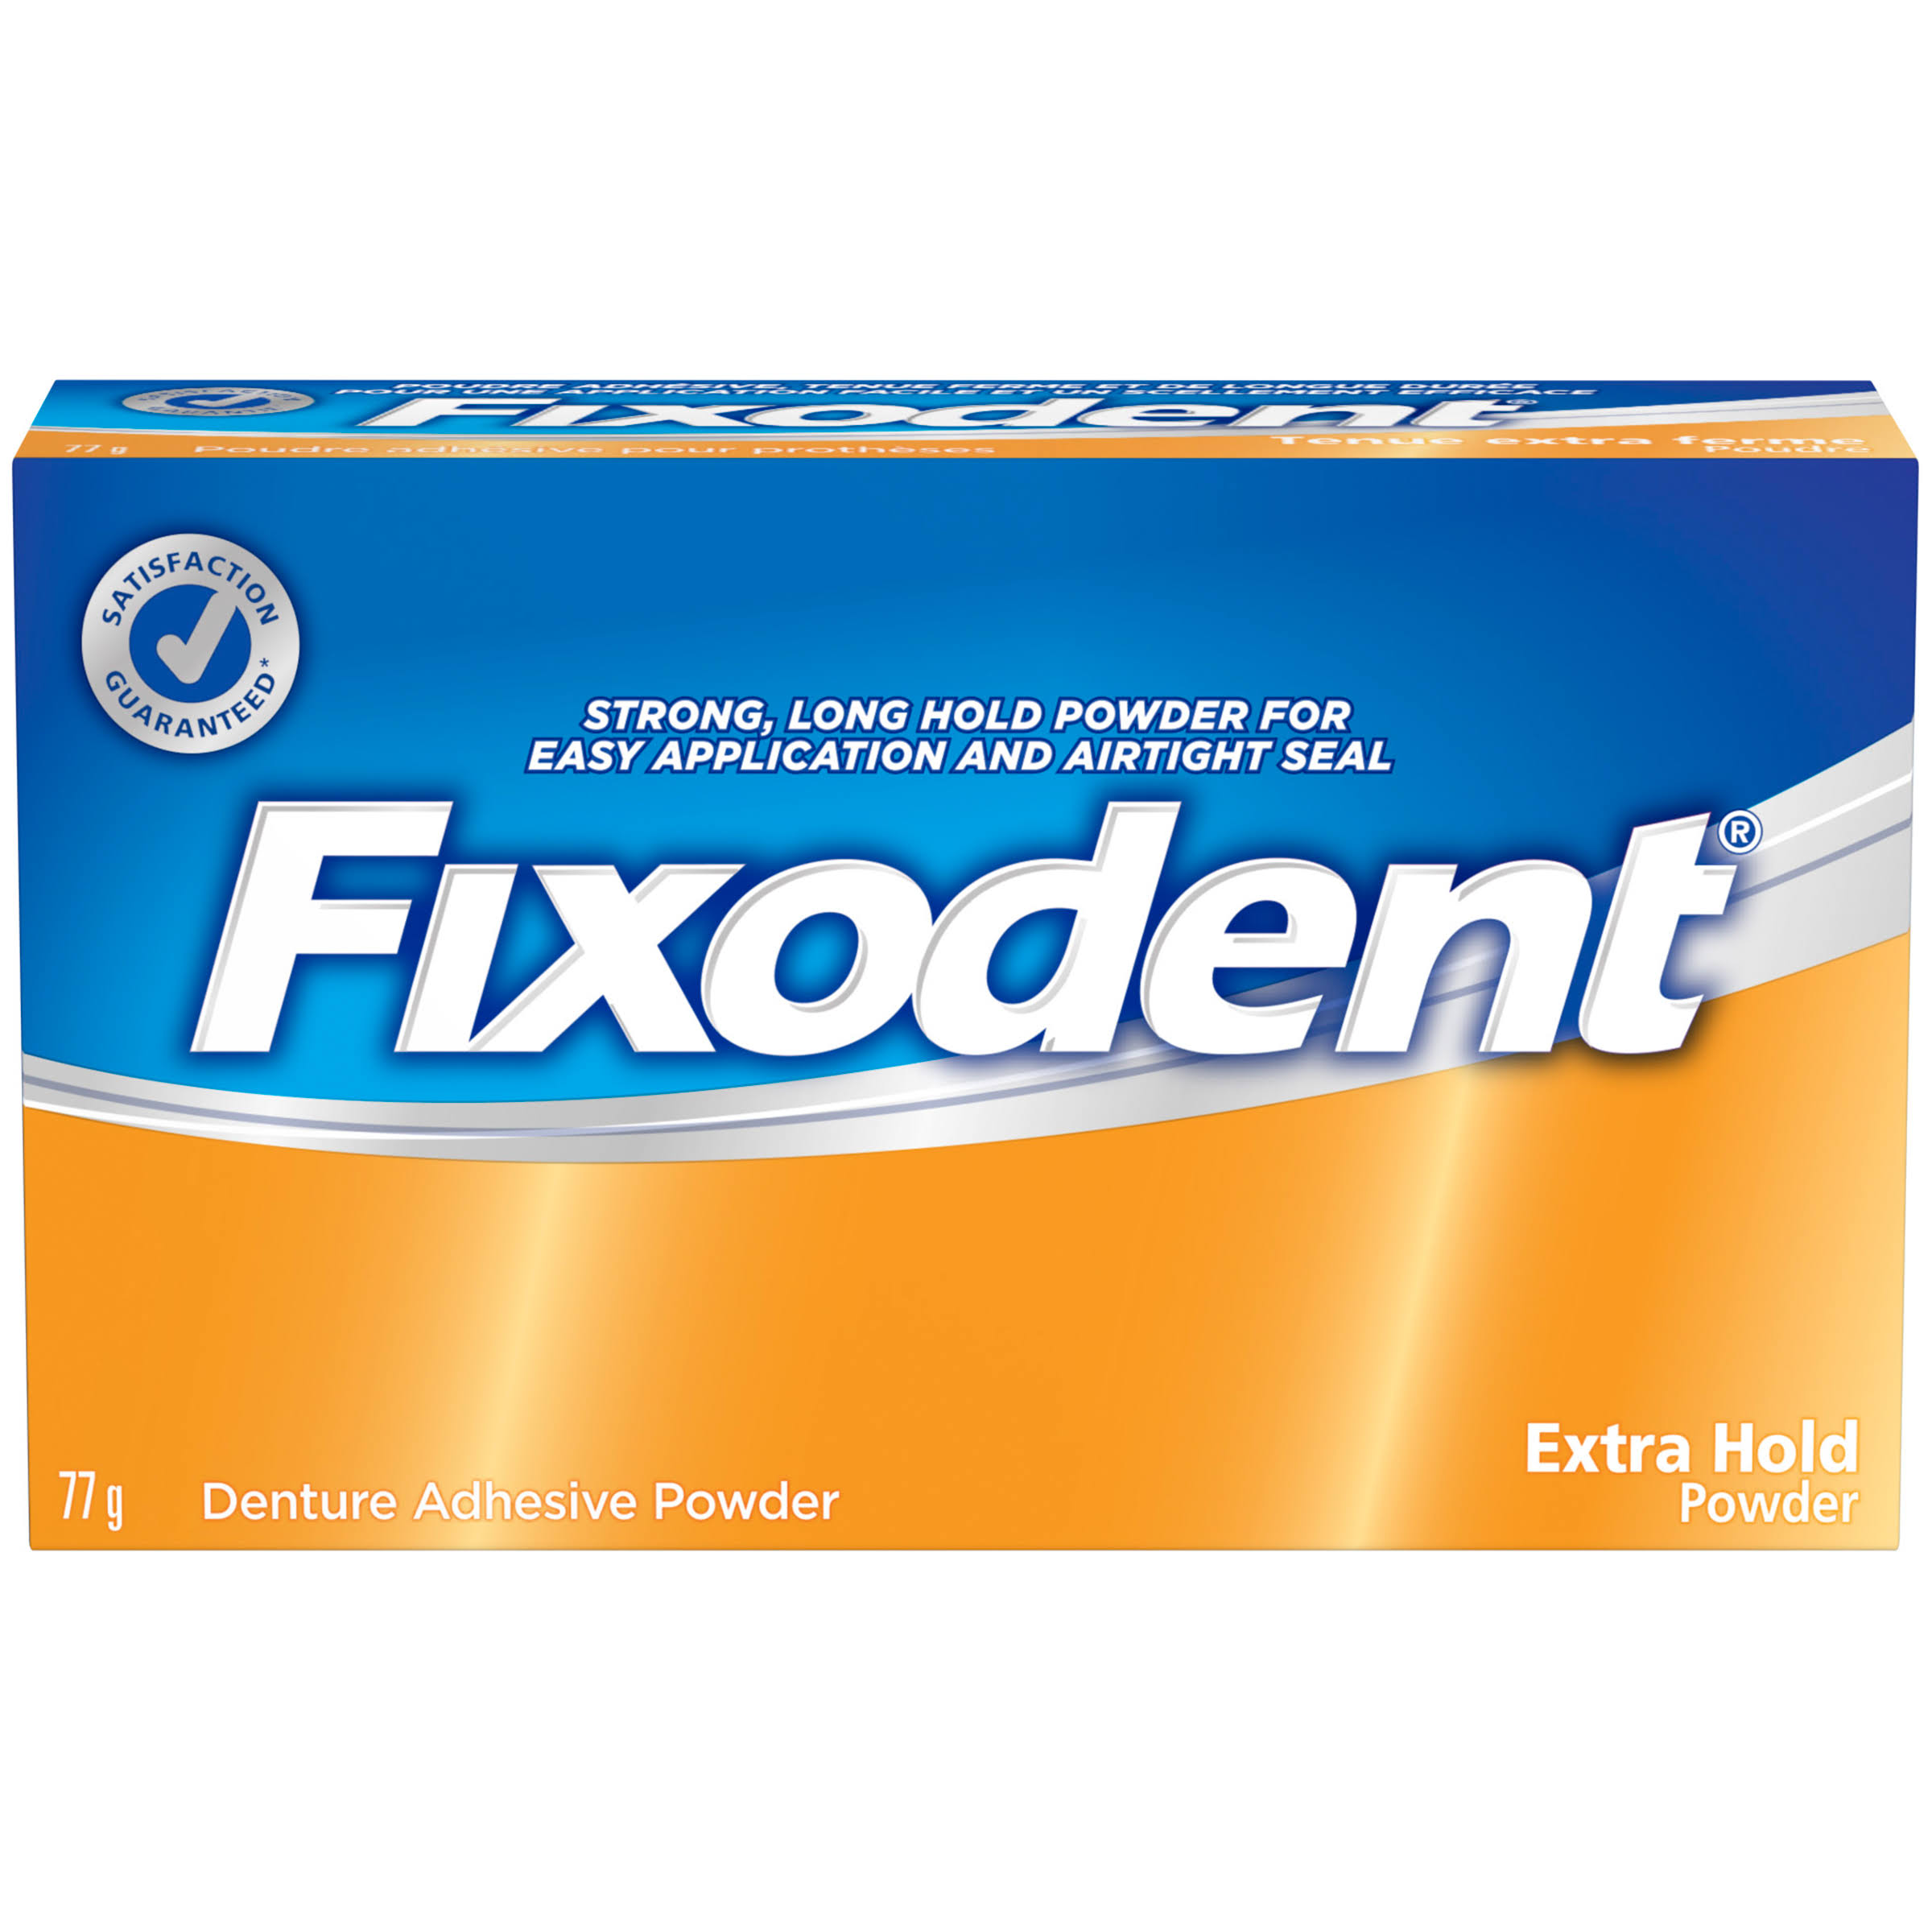 Fixodent Denture Adhesive Powder - Extra Hold, 77g